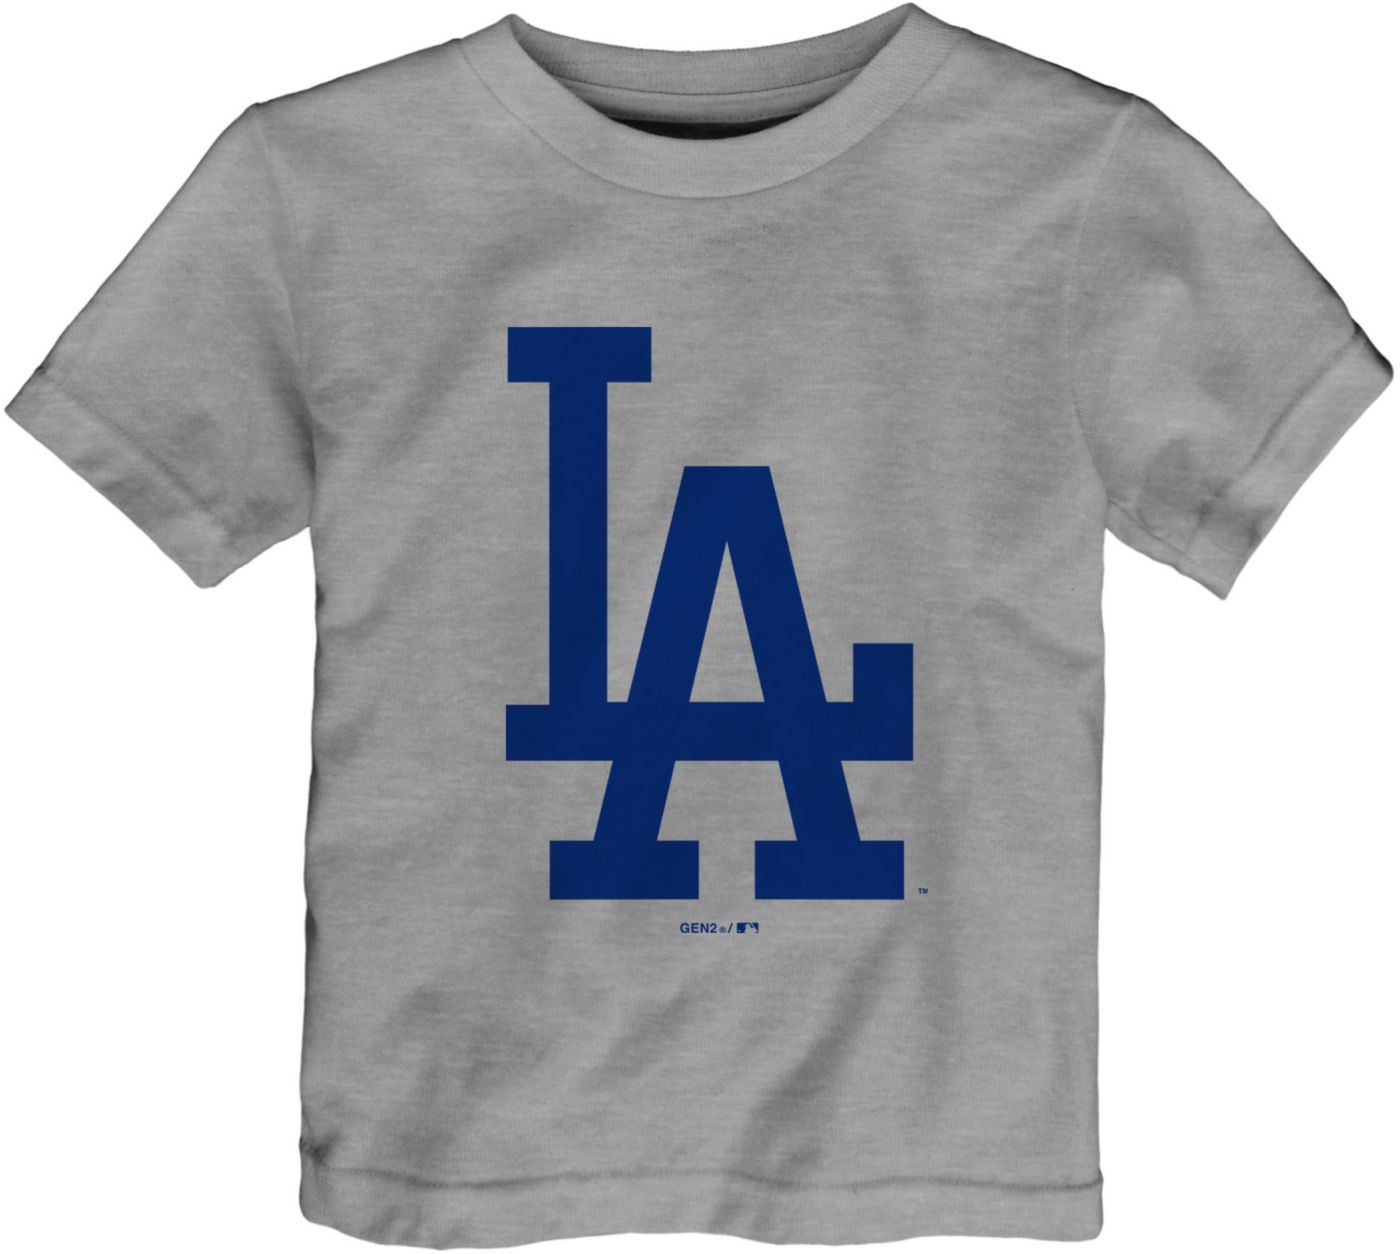 Gen2 Toddler Los Angeles Dodgers Mascot T-Shirt